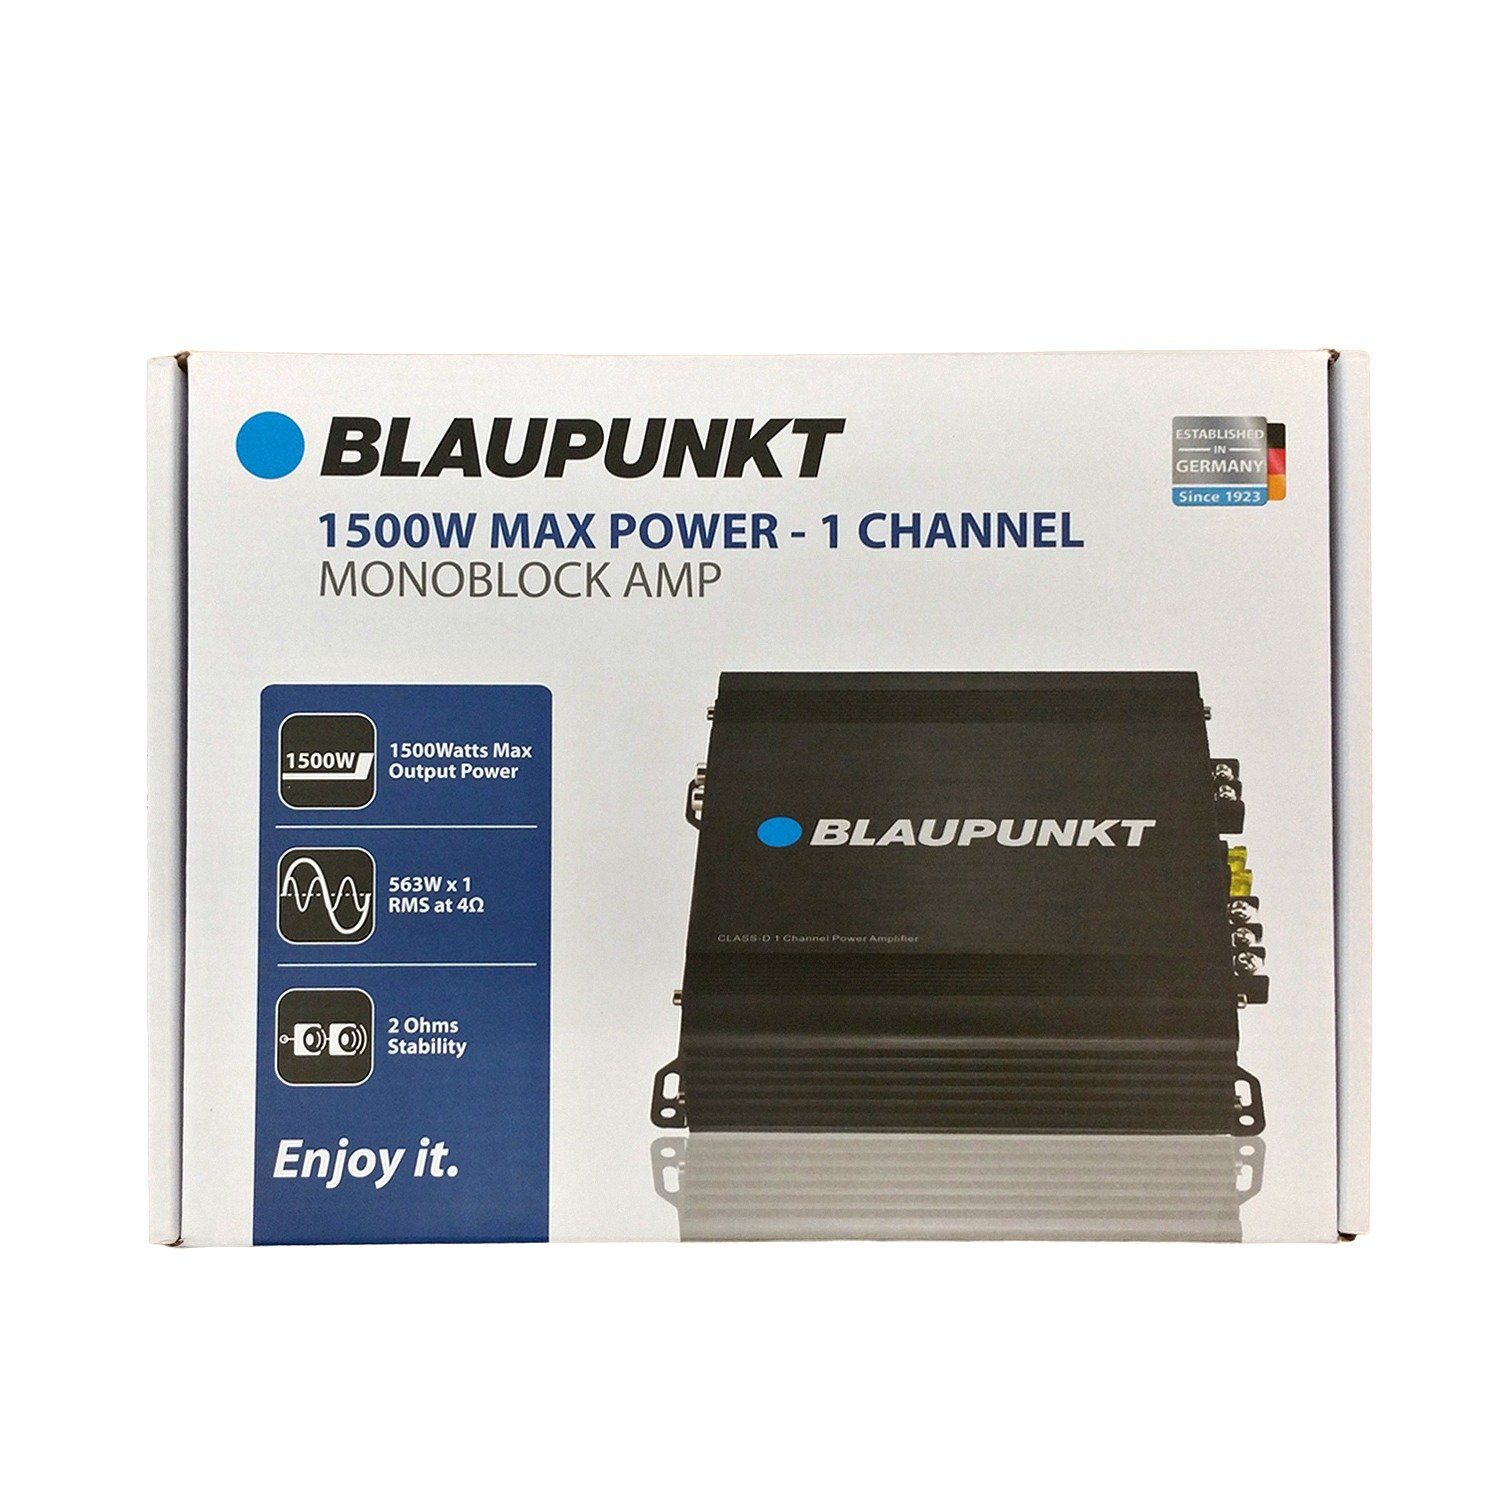 Blaupunkt 1500W Max 1 Channel/Monoblock Class D Stereo Car Audio Amplifier